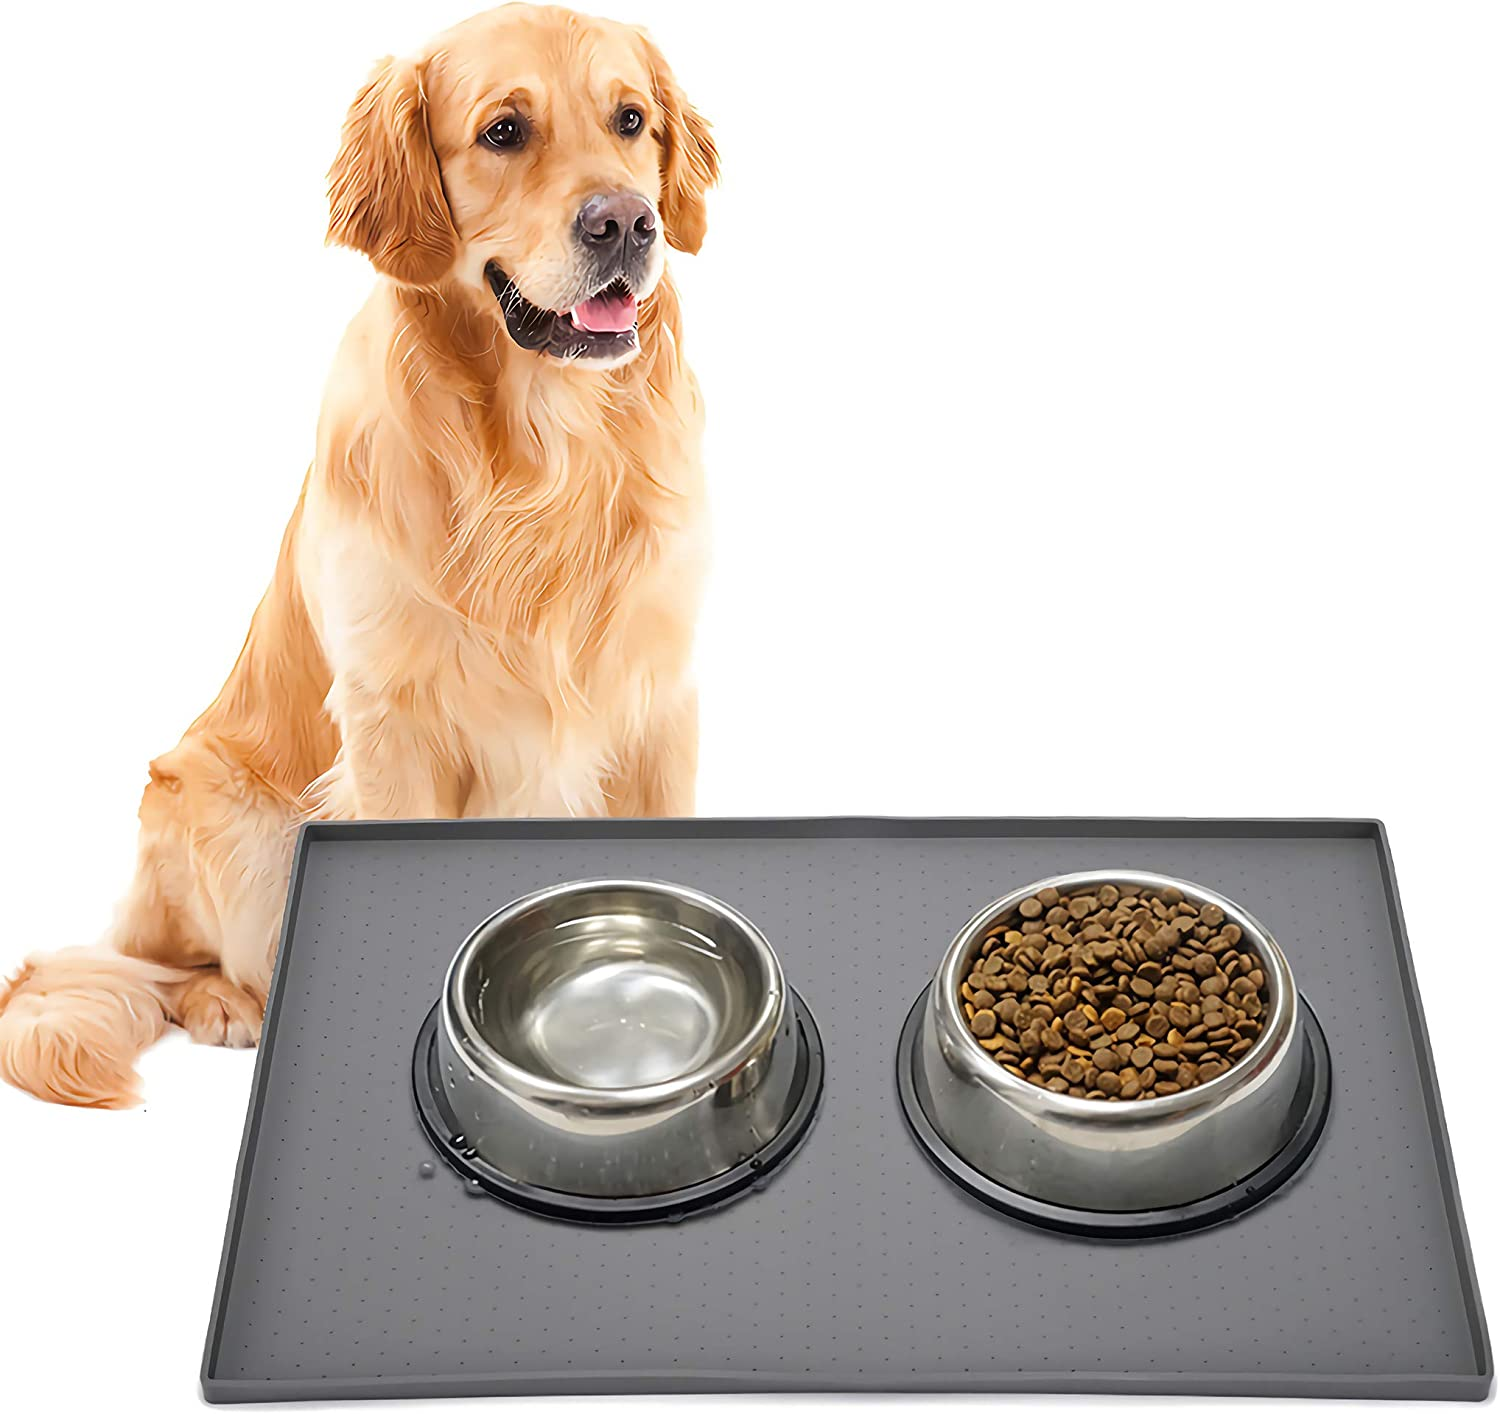 Silicone Dog Food Mat, Pet Bowl Mats with Raised Edges, Puppy Feeding Mat for Floor, Non-Slip Waterproof Dogs Cat Placemat